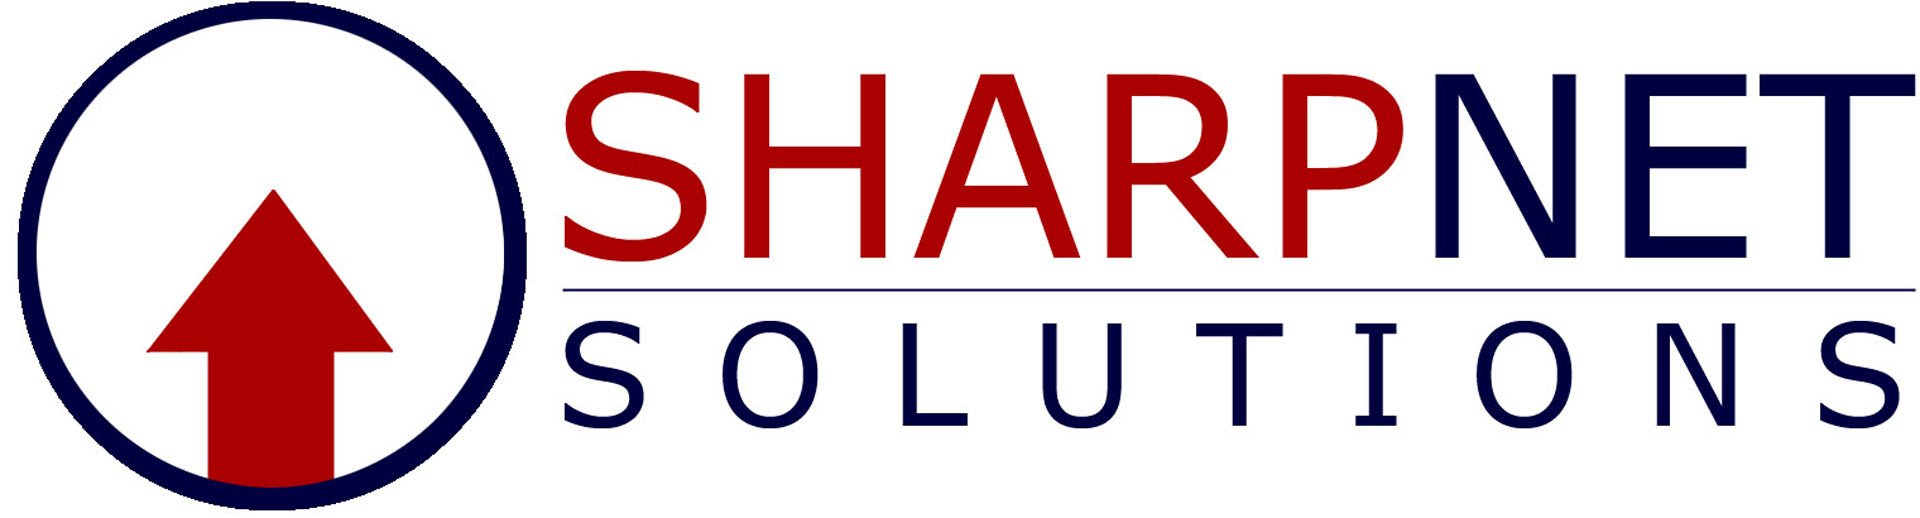 Top Local Search Engine Optimization Business Logo: SharpNet